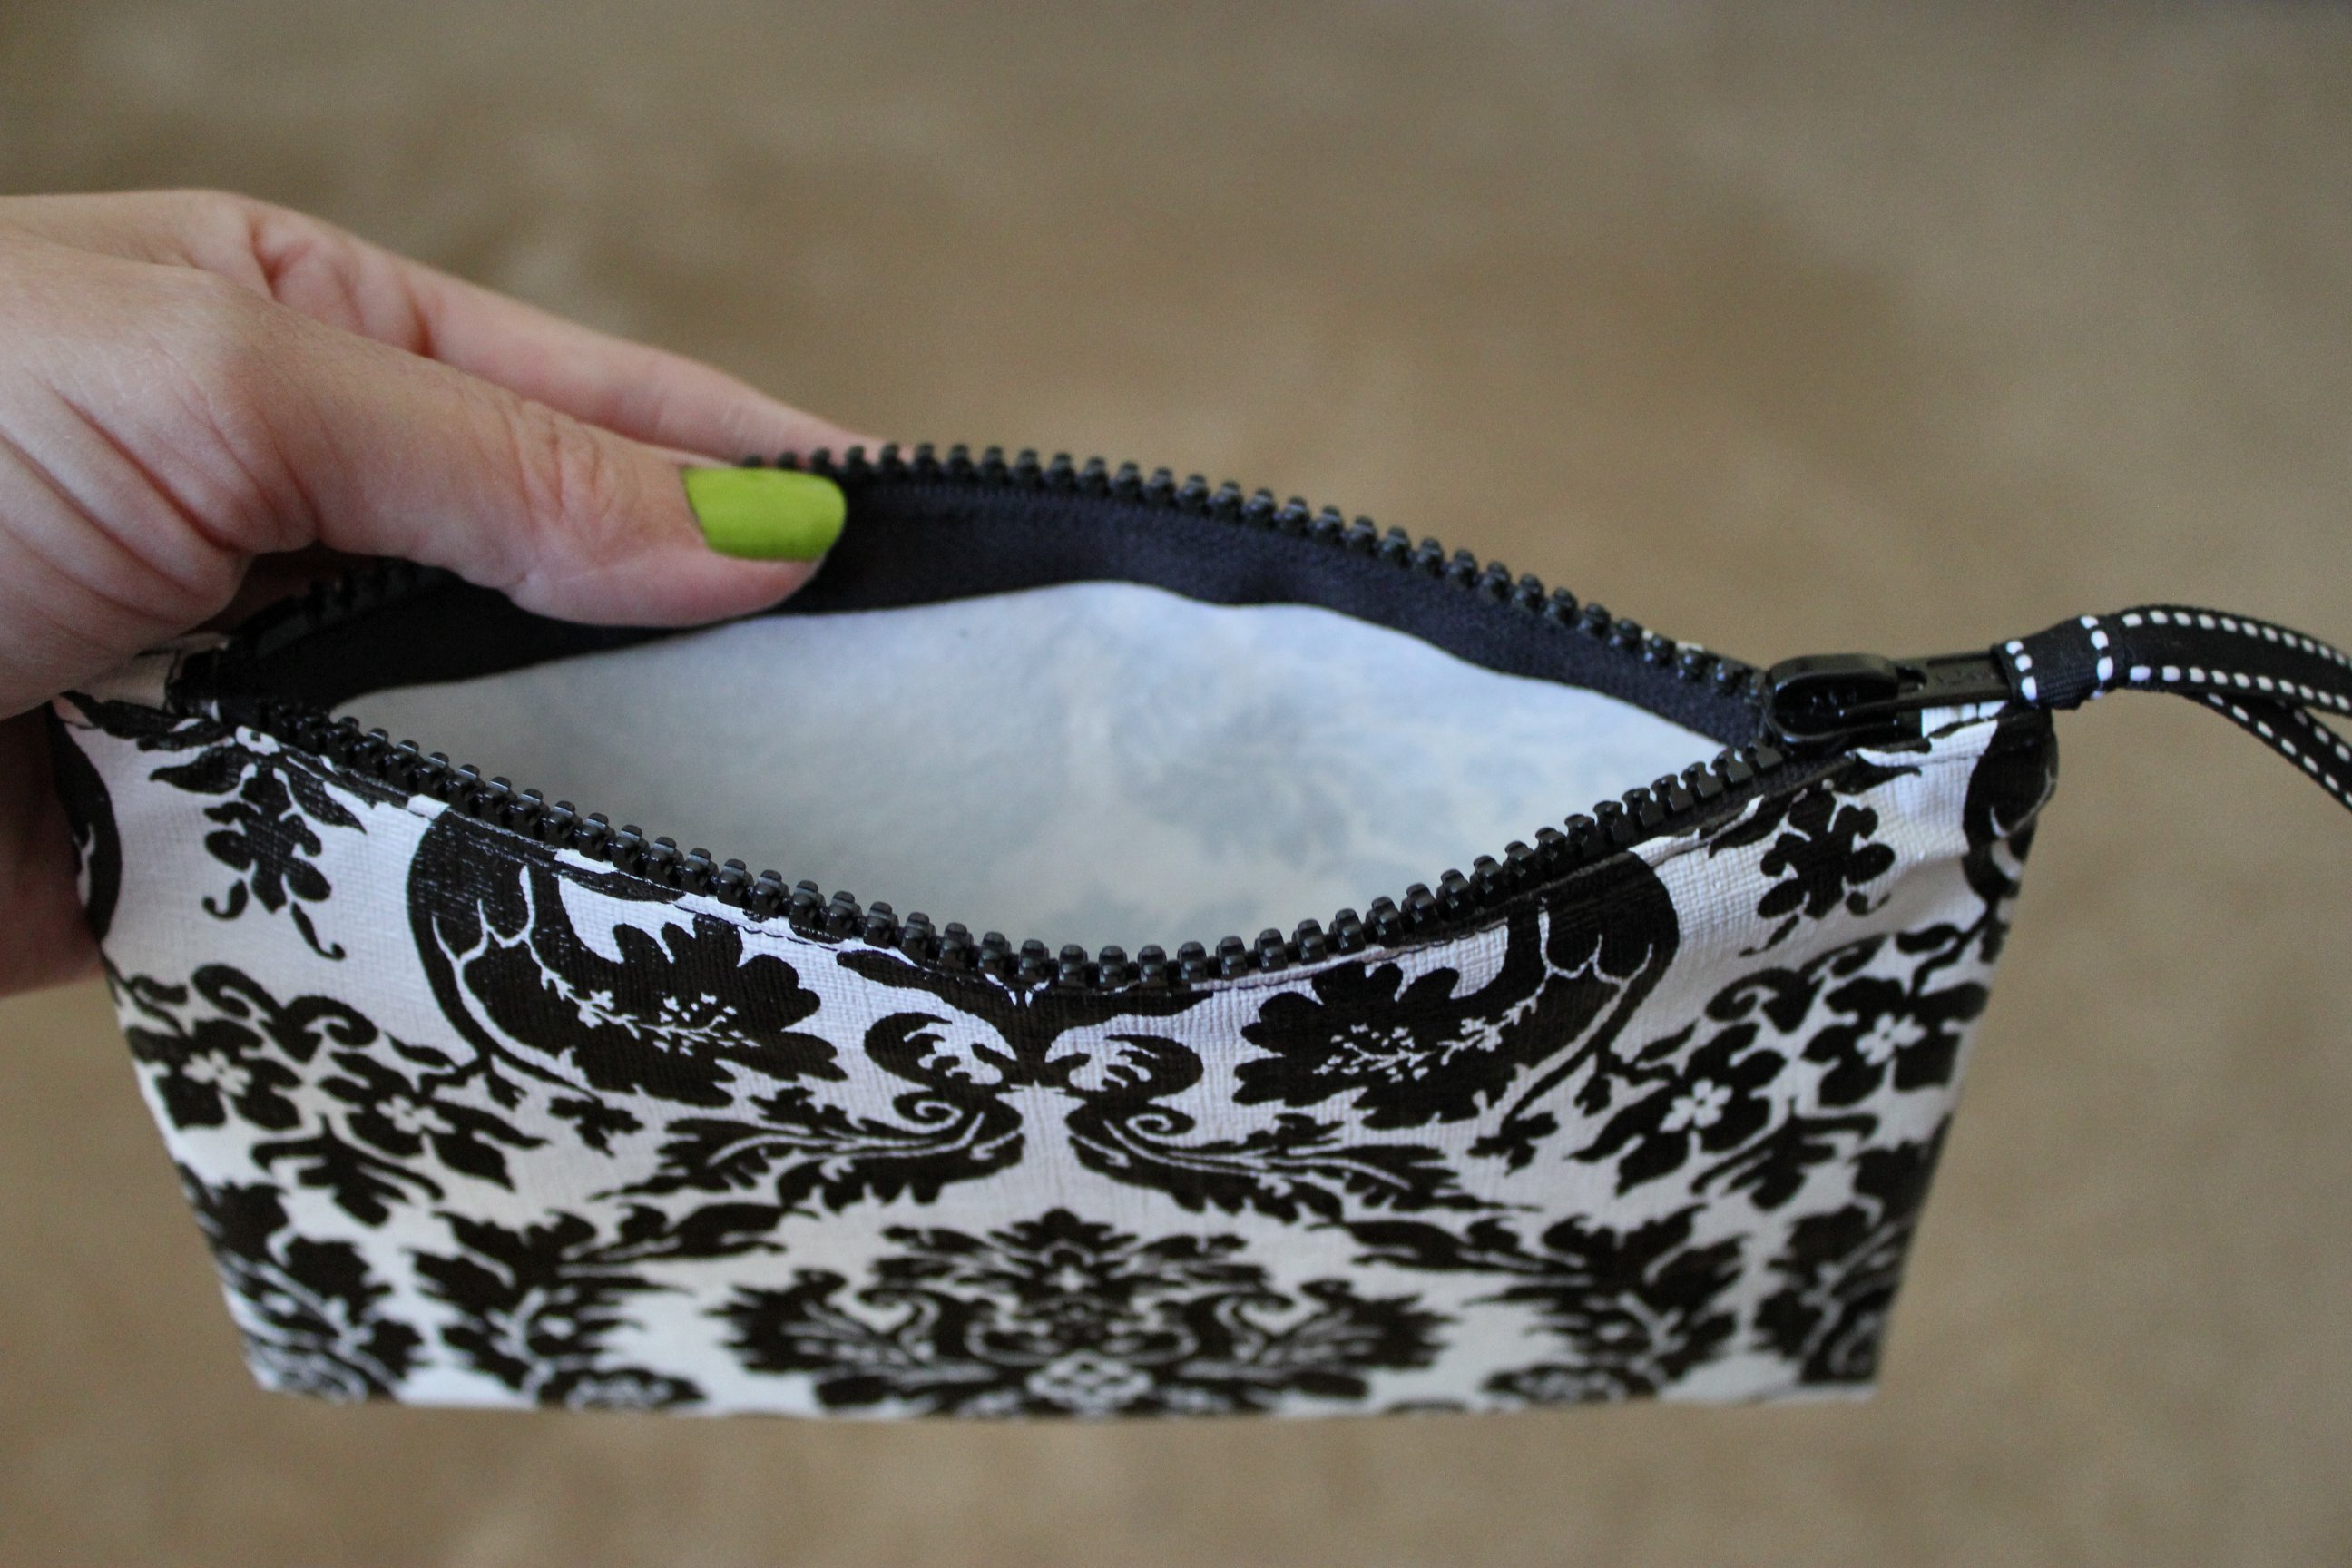 Diy Craft Zippered Cosmetic Bags Inside Nanabread S Head